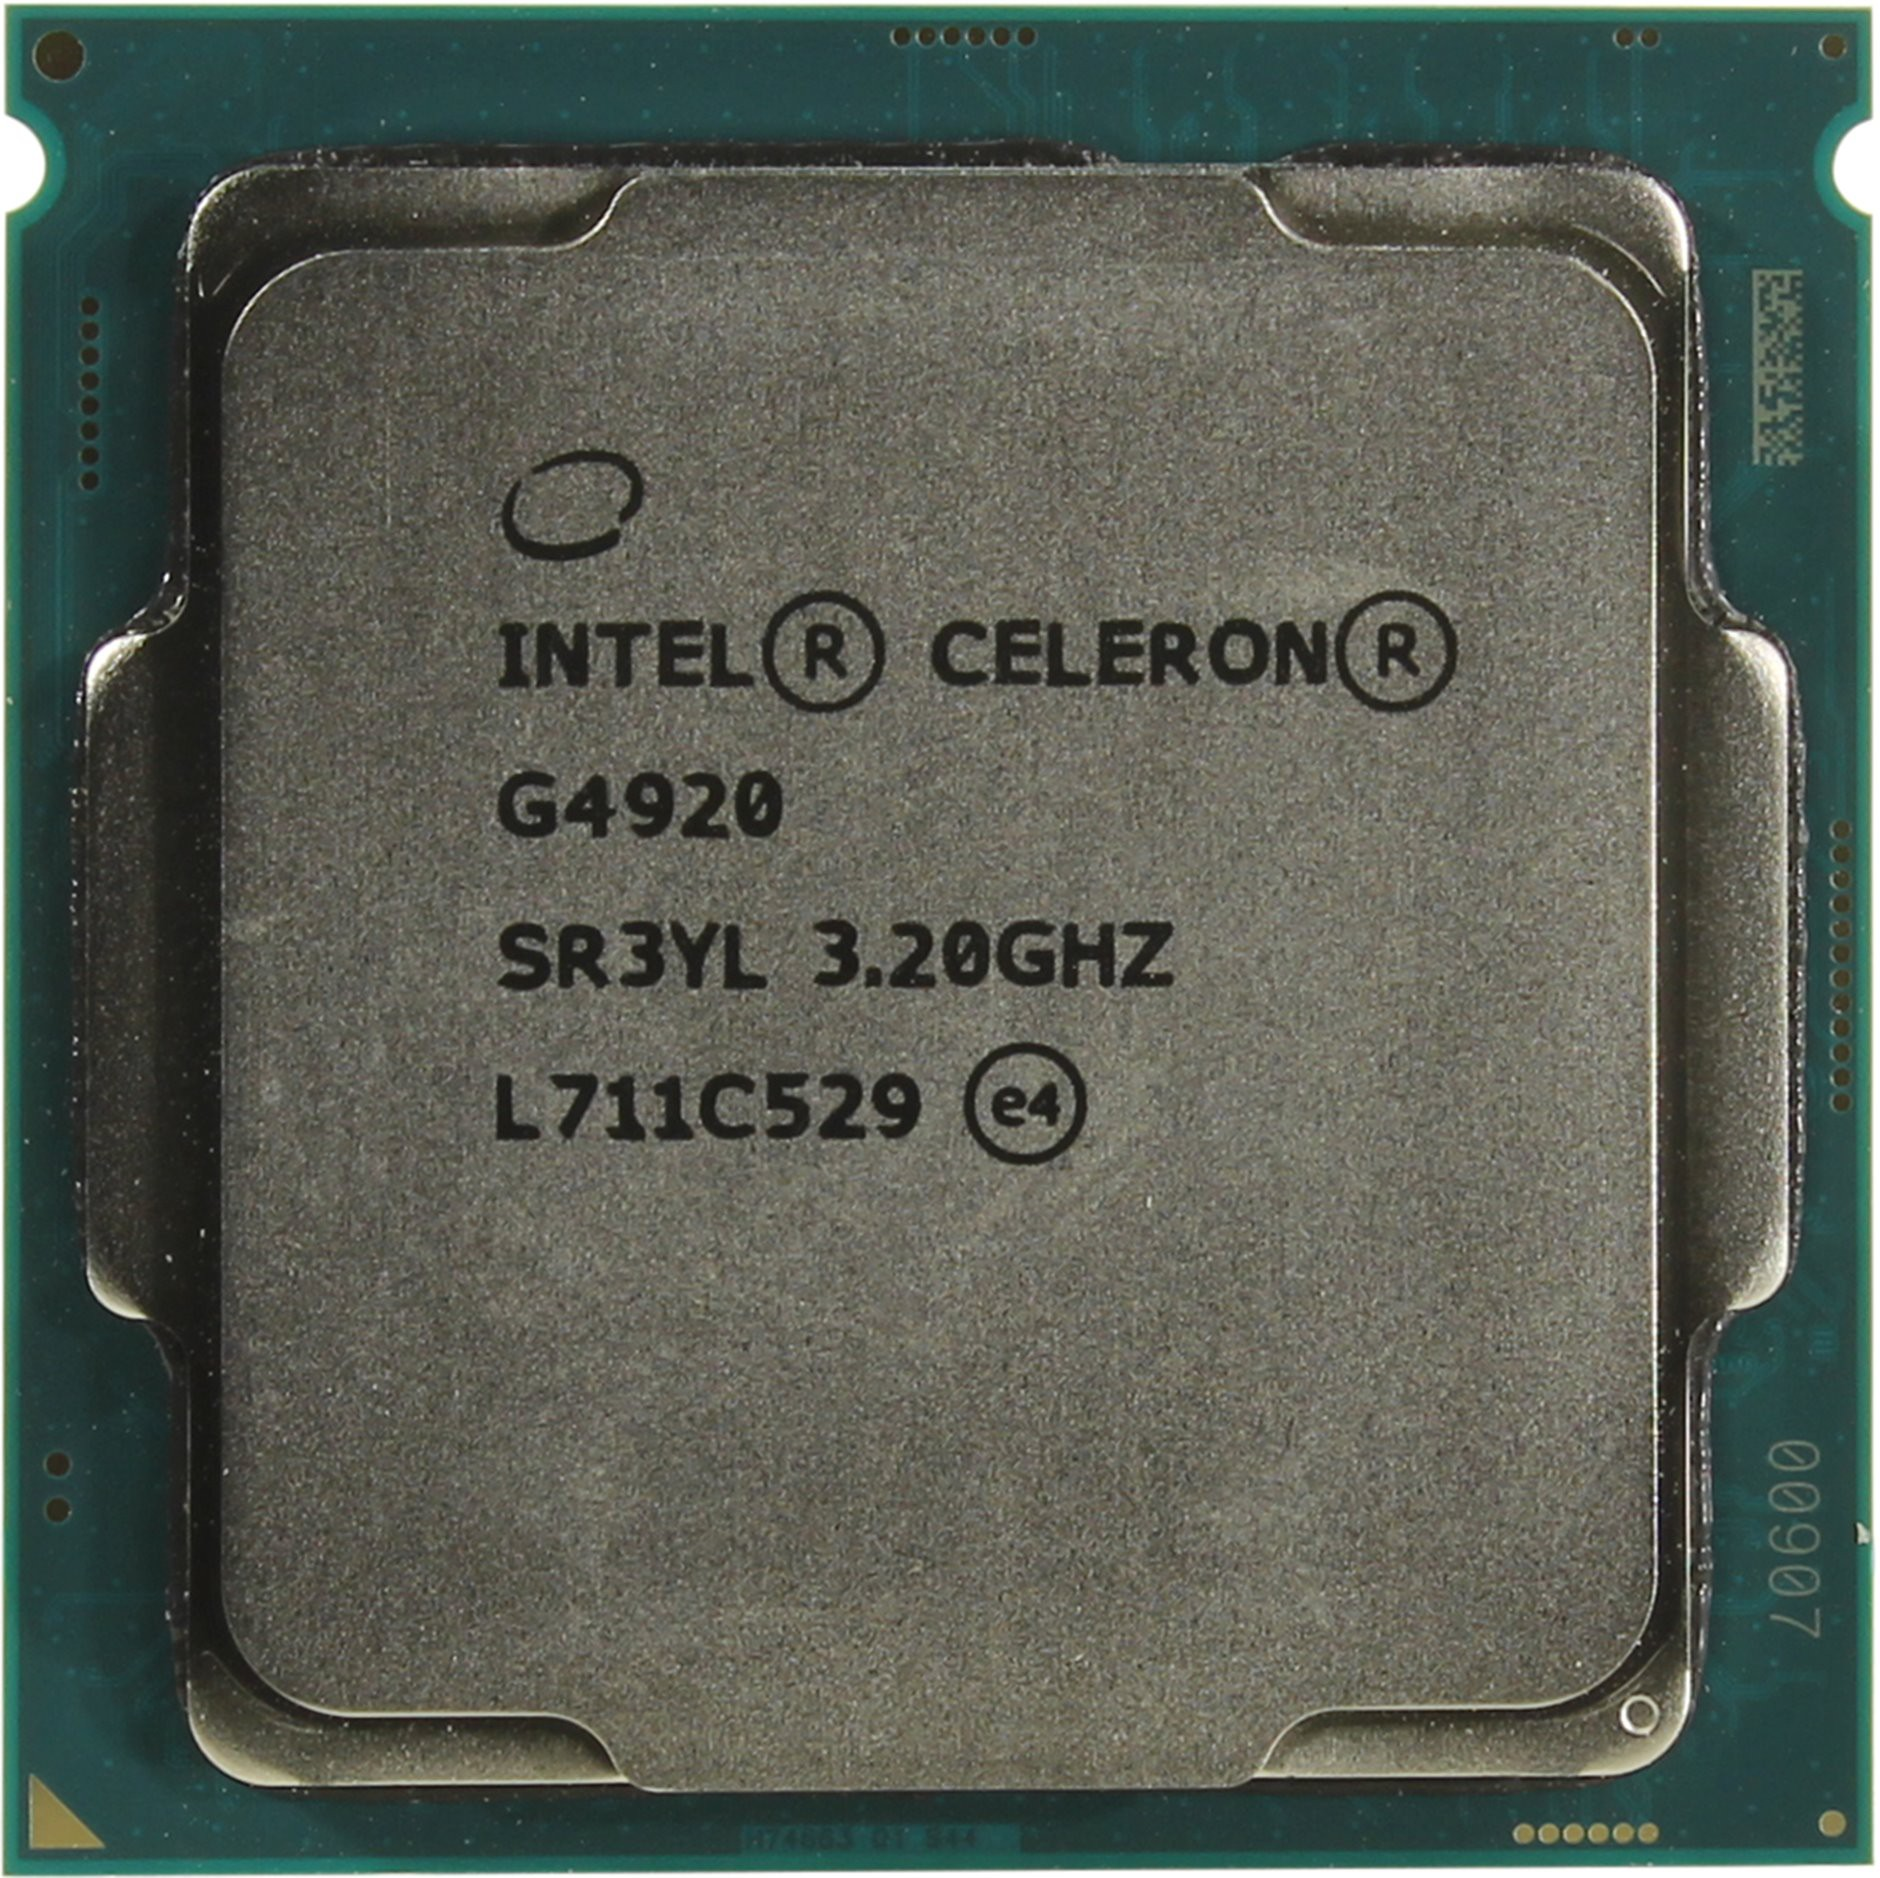 Процессор Intel Celeron G4920 3.2GHz, 2 ядра / 2 потока, 2Mb, HD Graphics 610, 54W (Socket 1151)